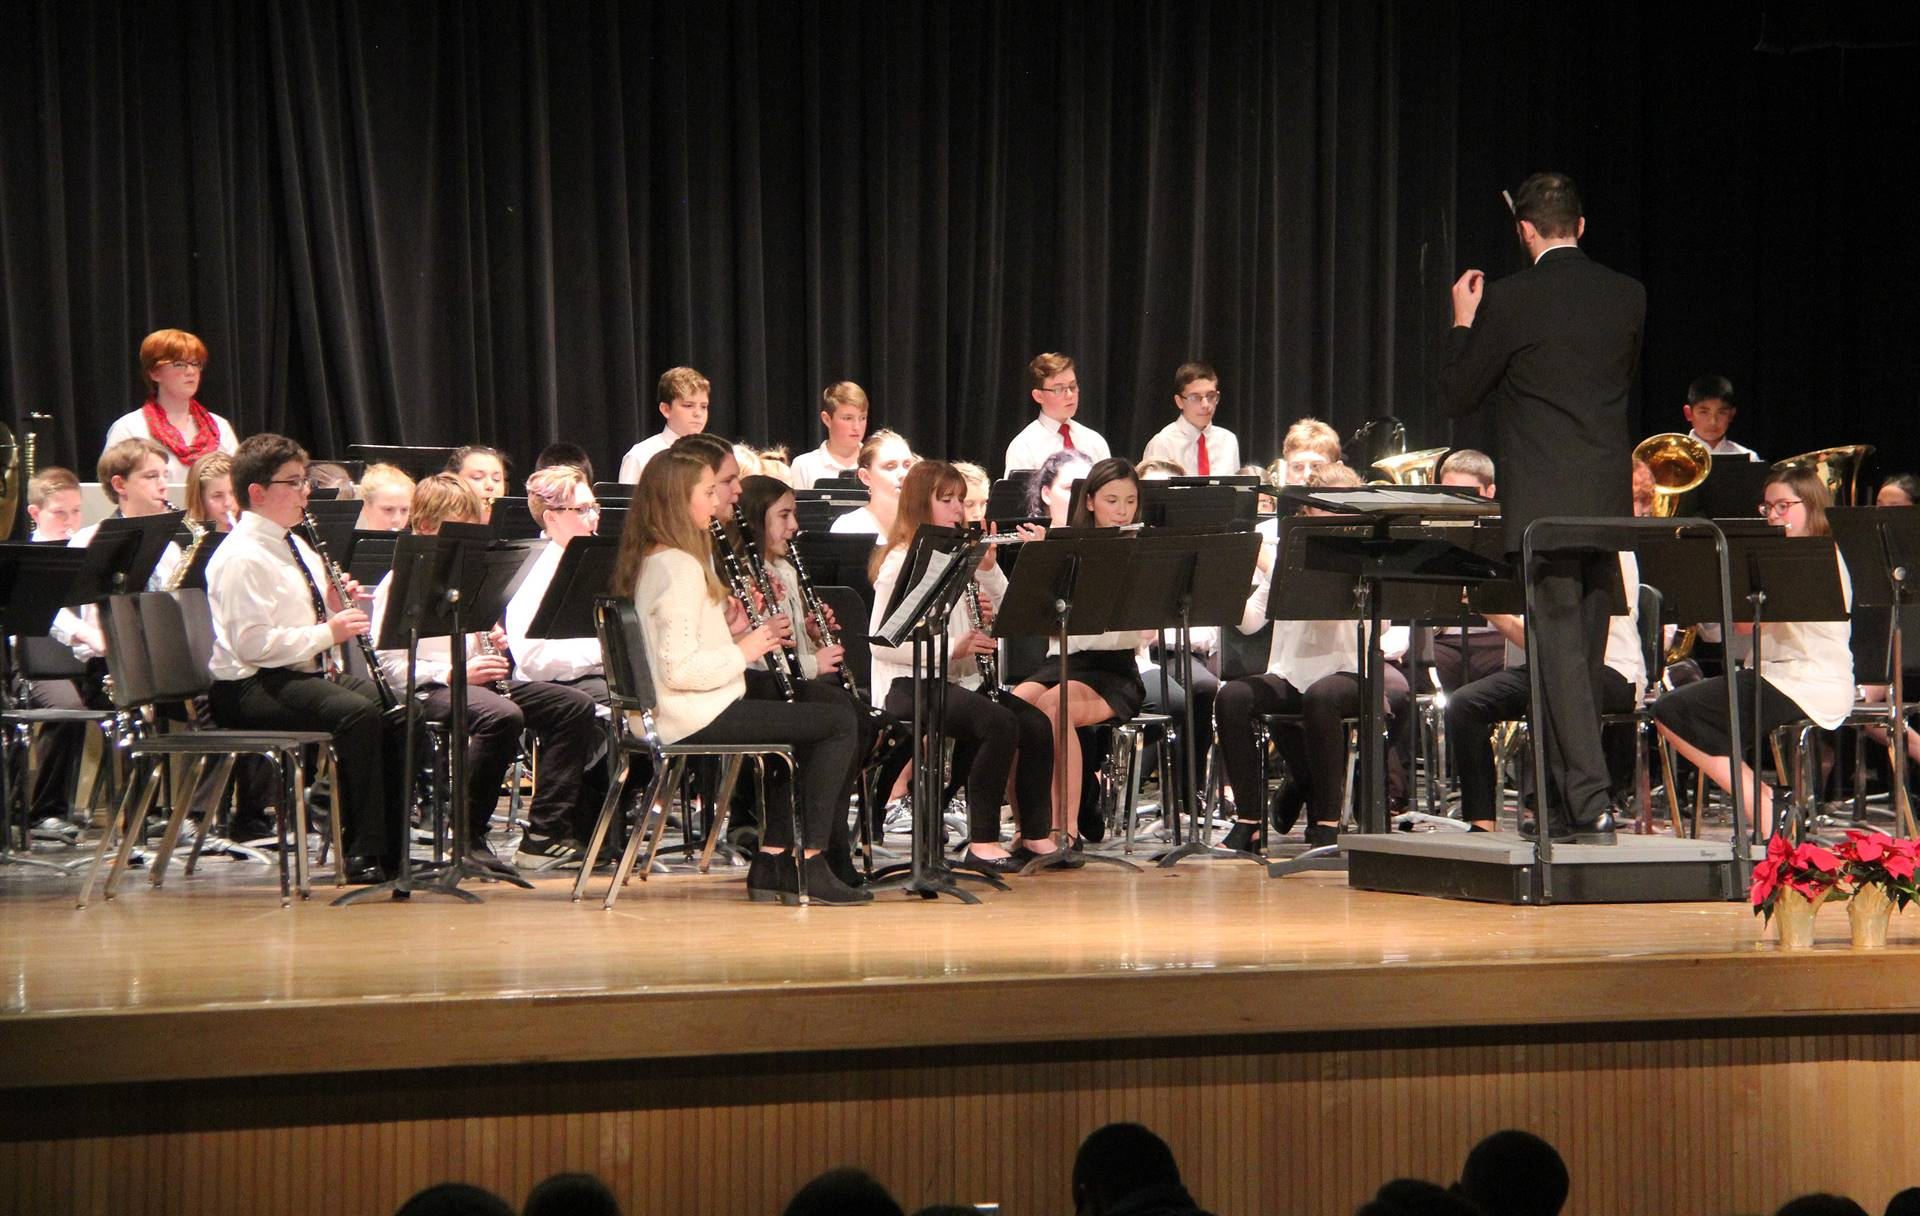 medium shot of seventh and eight grade band performing